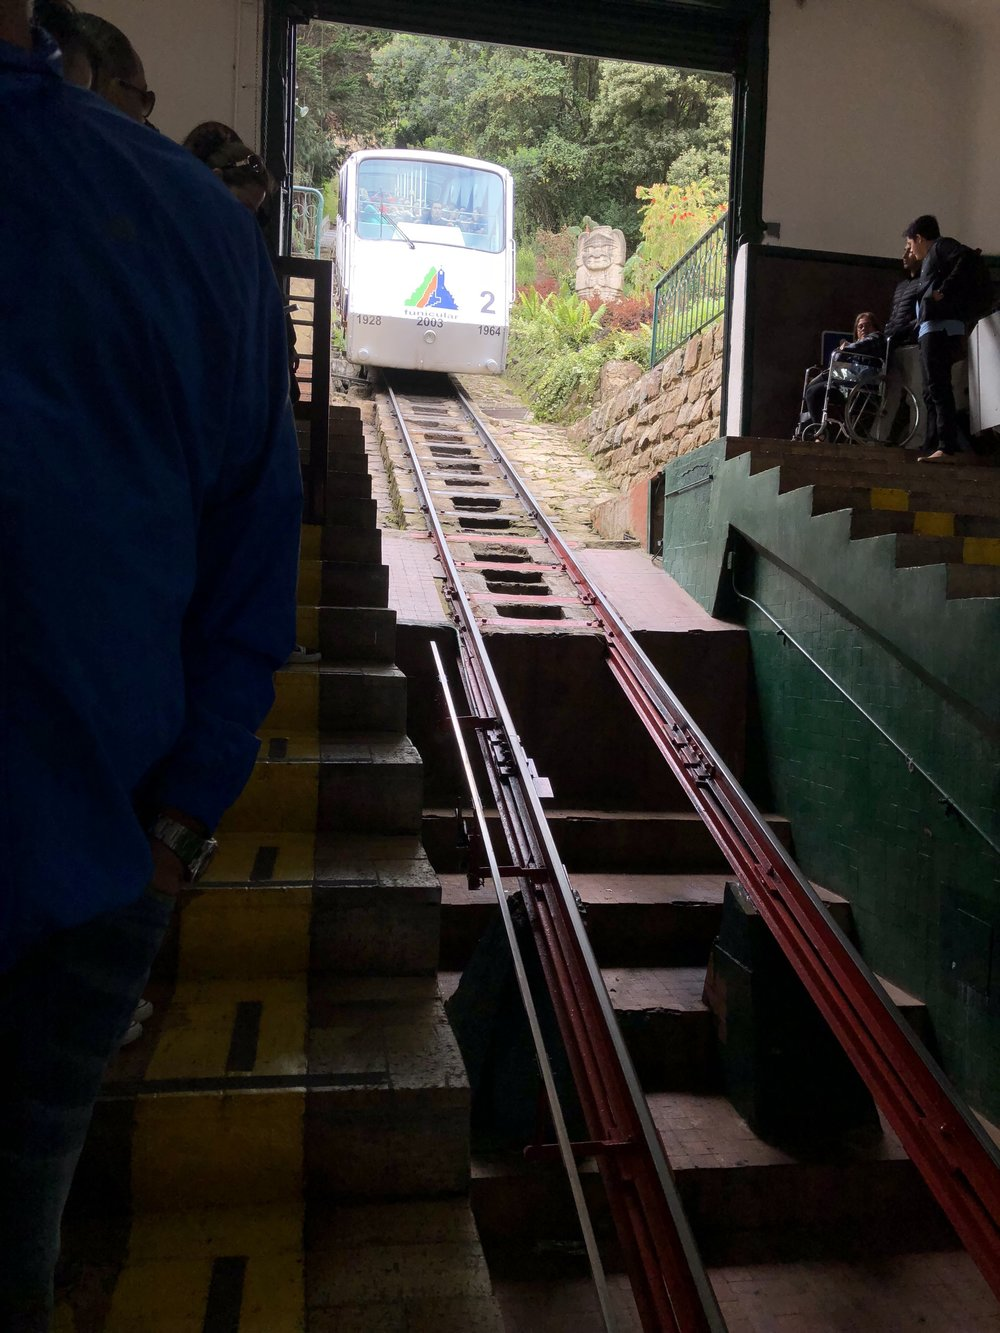 The train ride to the top took less than 5 minutes.